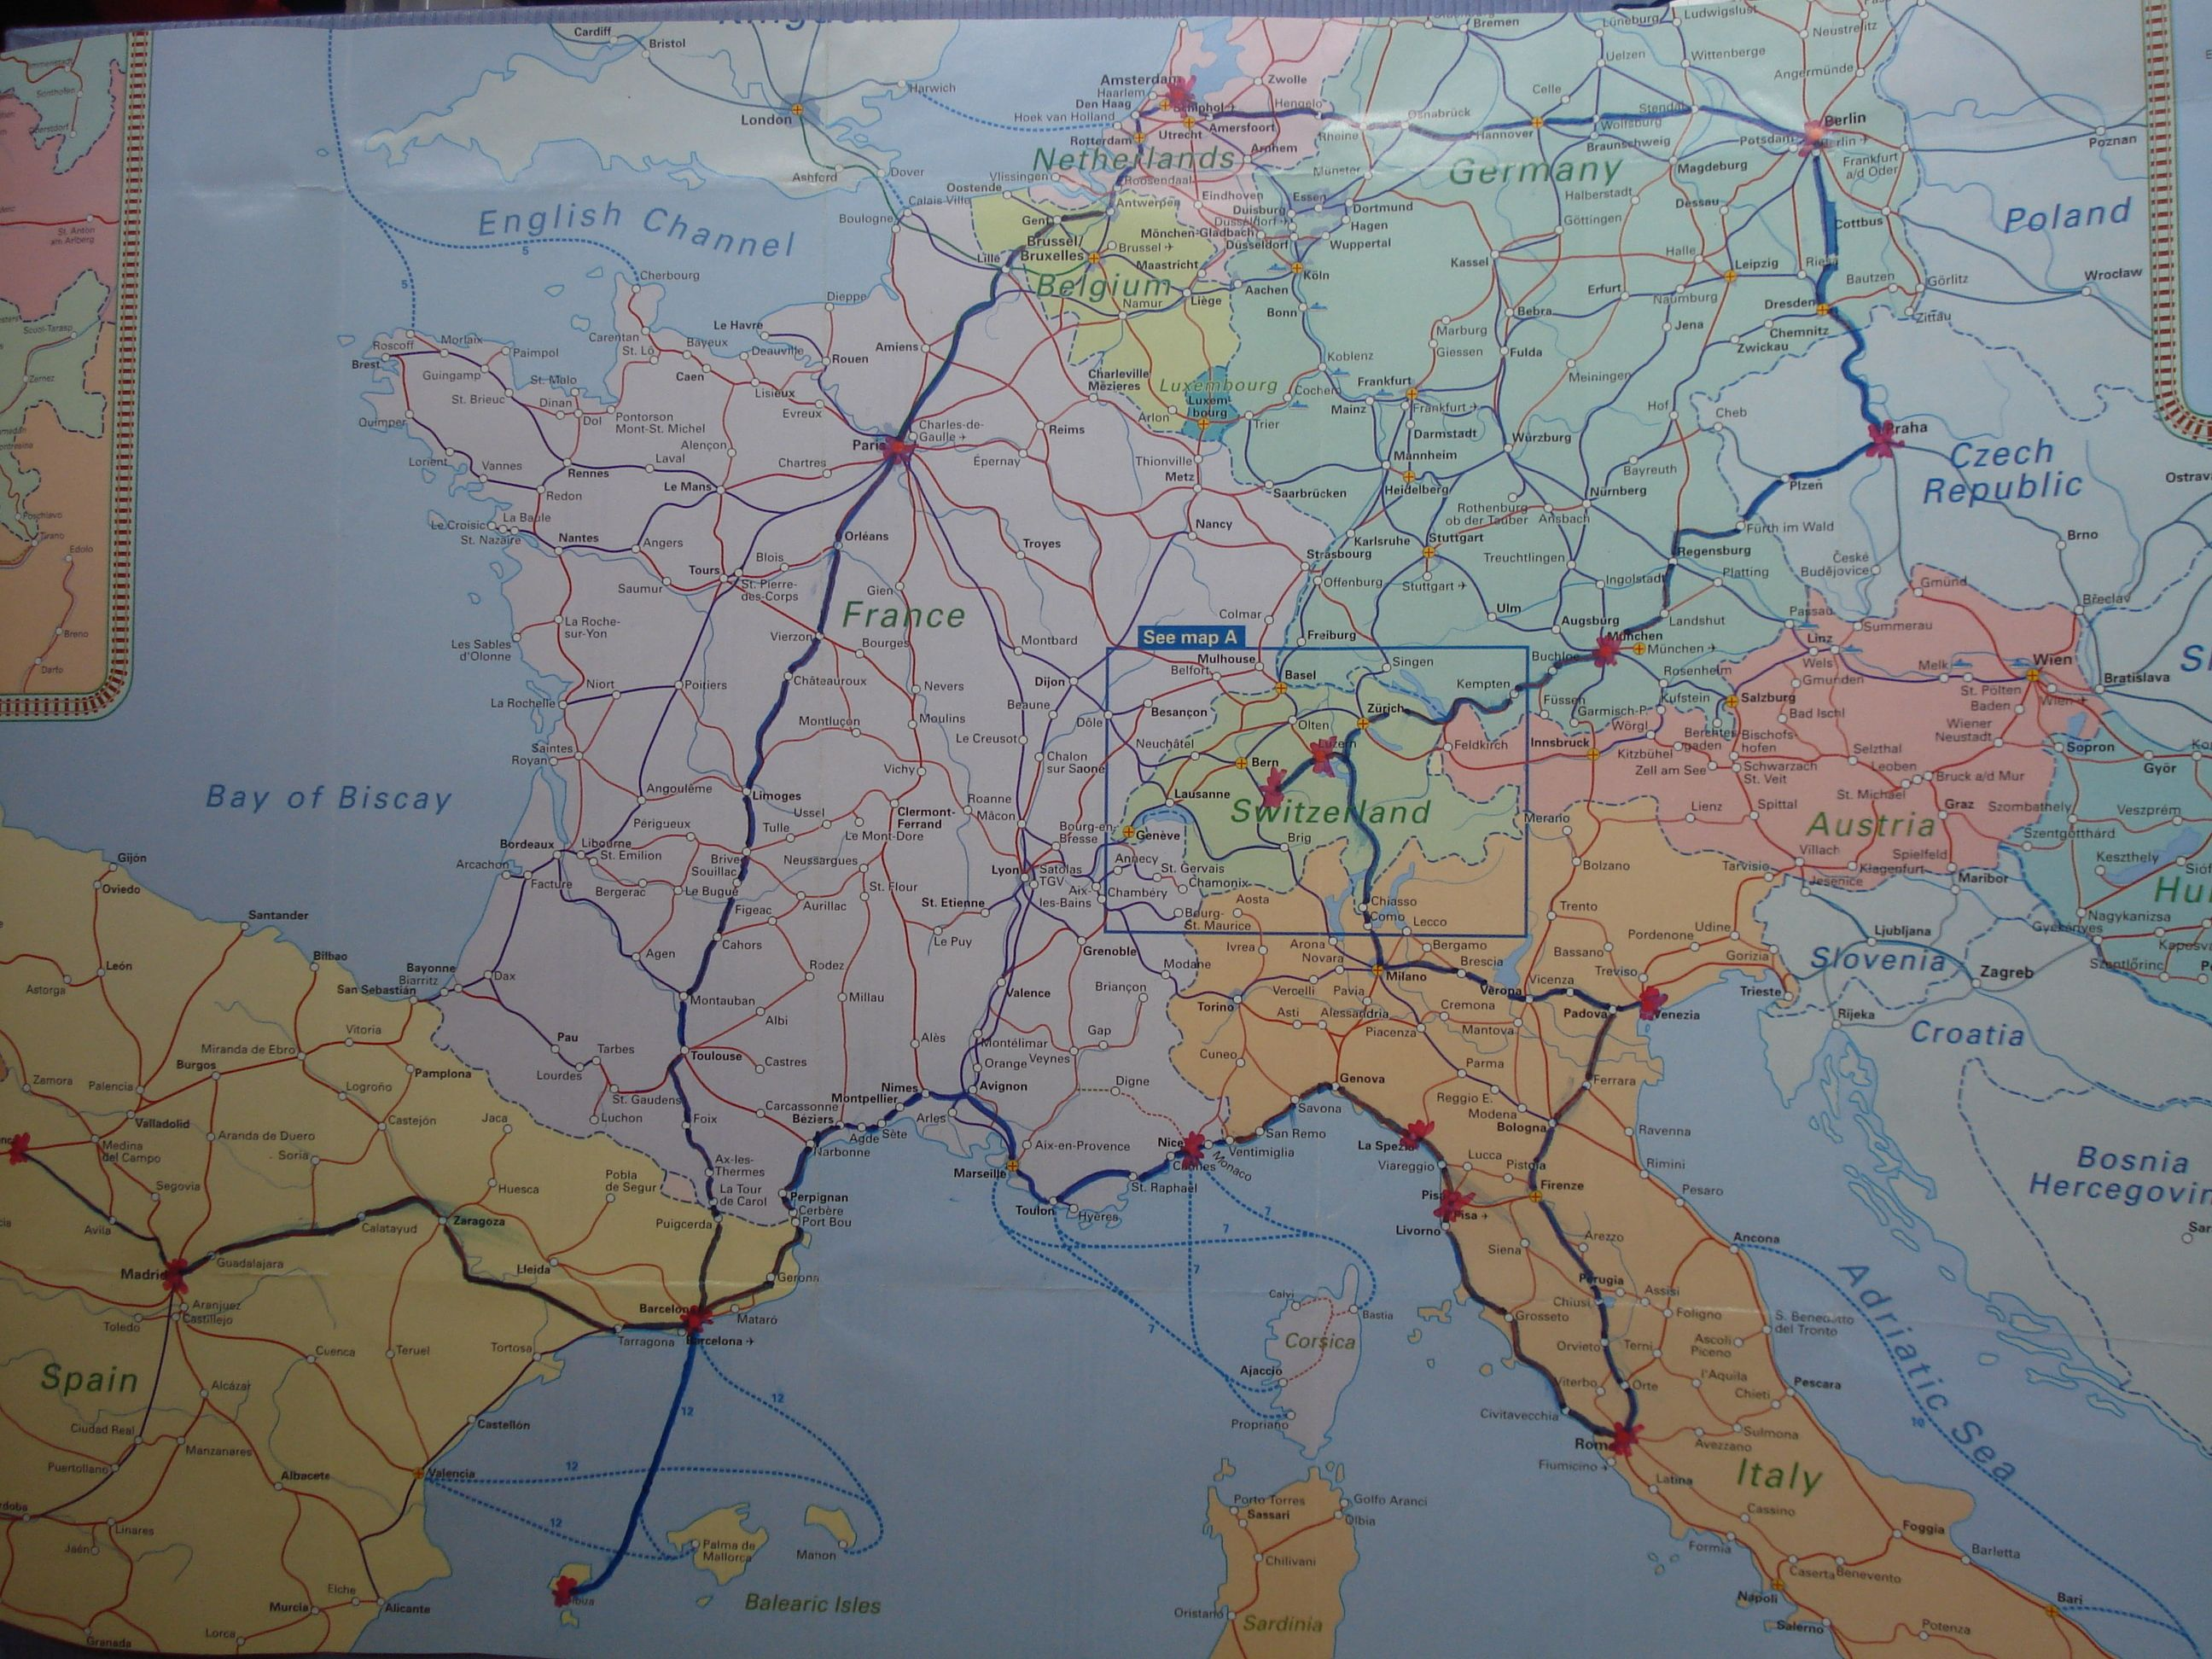 this is the backpacking route i took through europe. 7 countries and